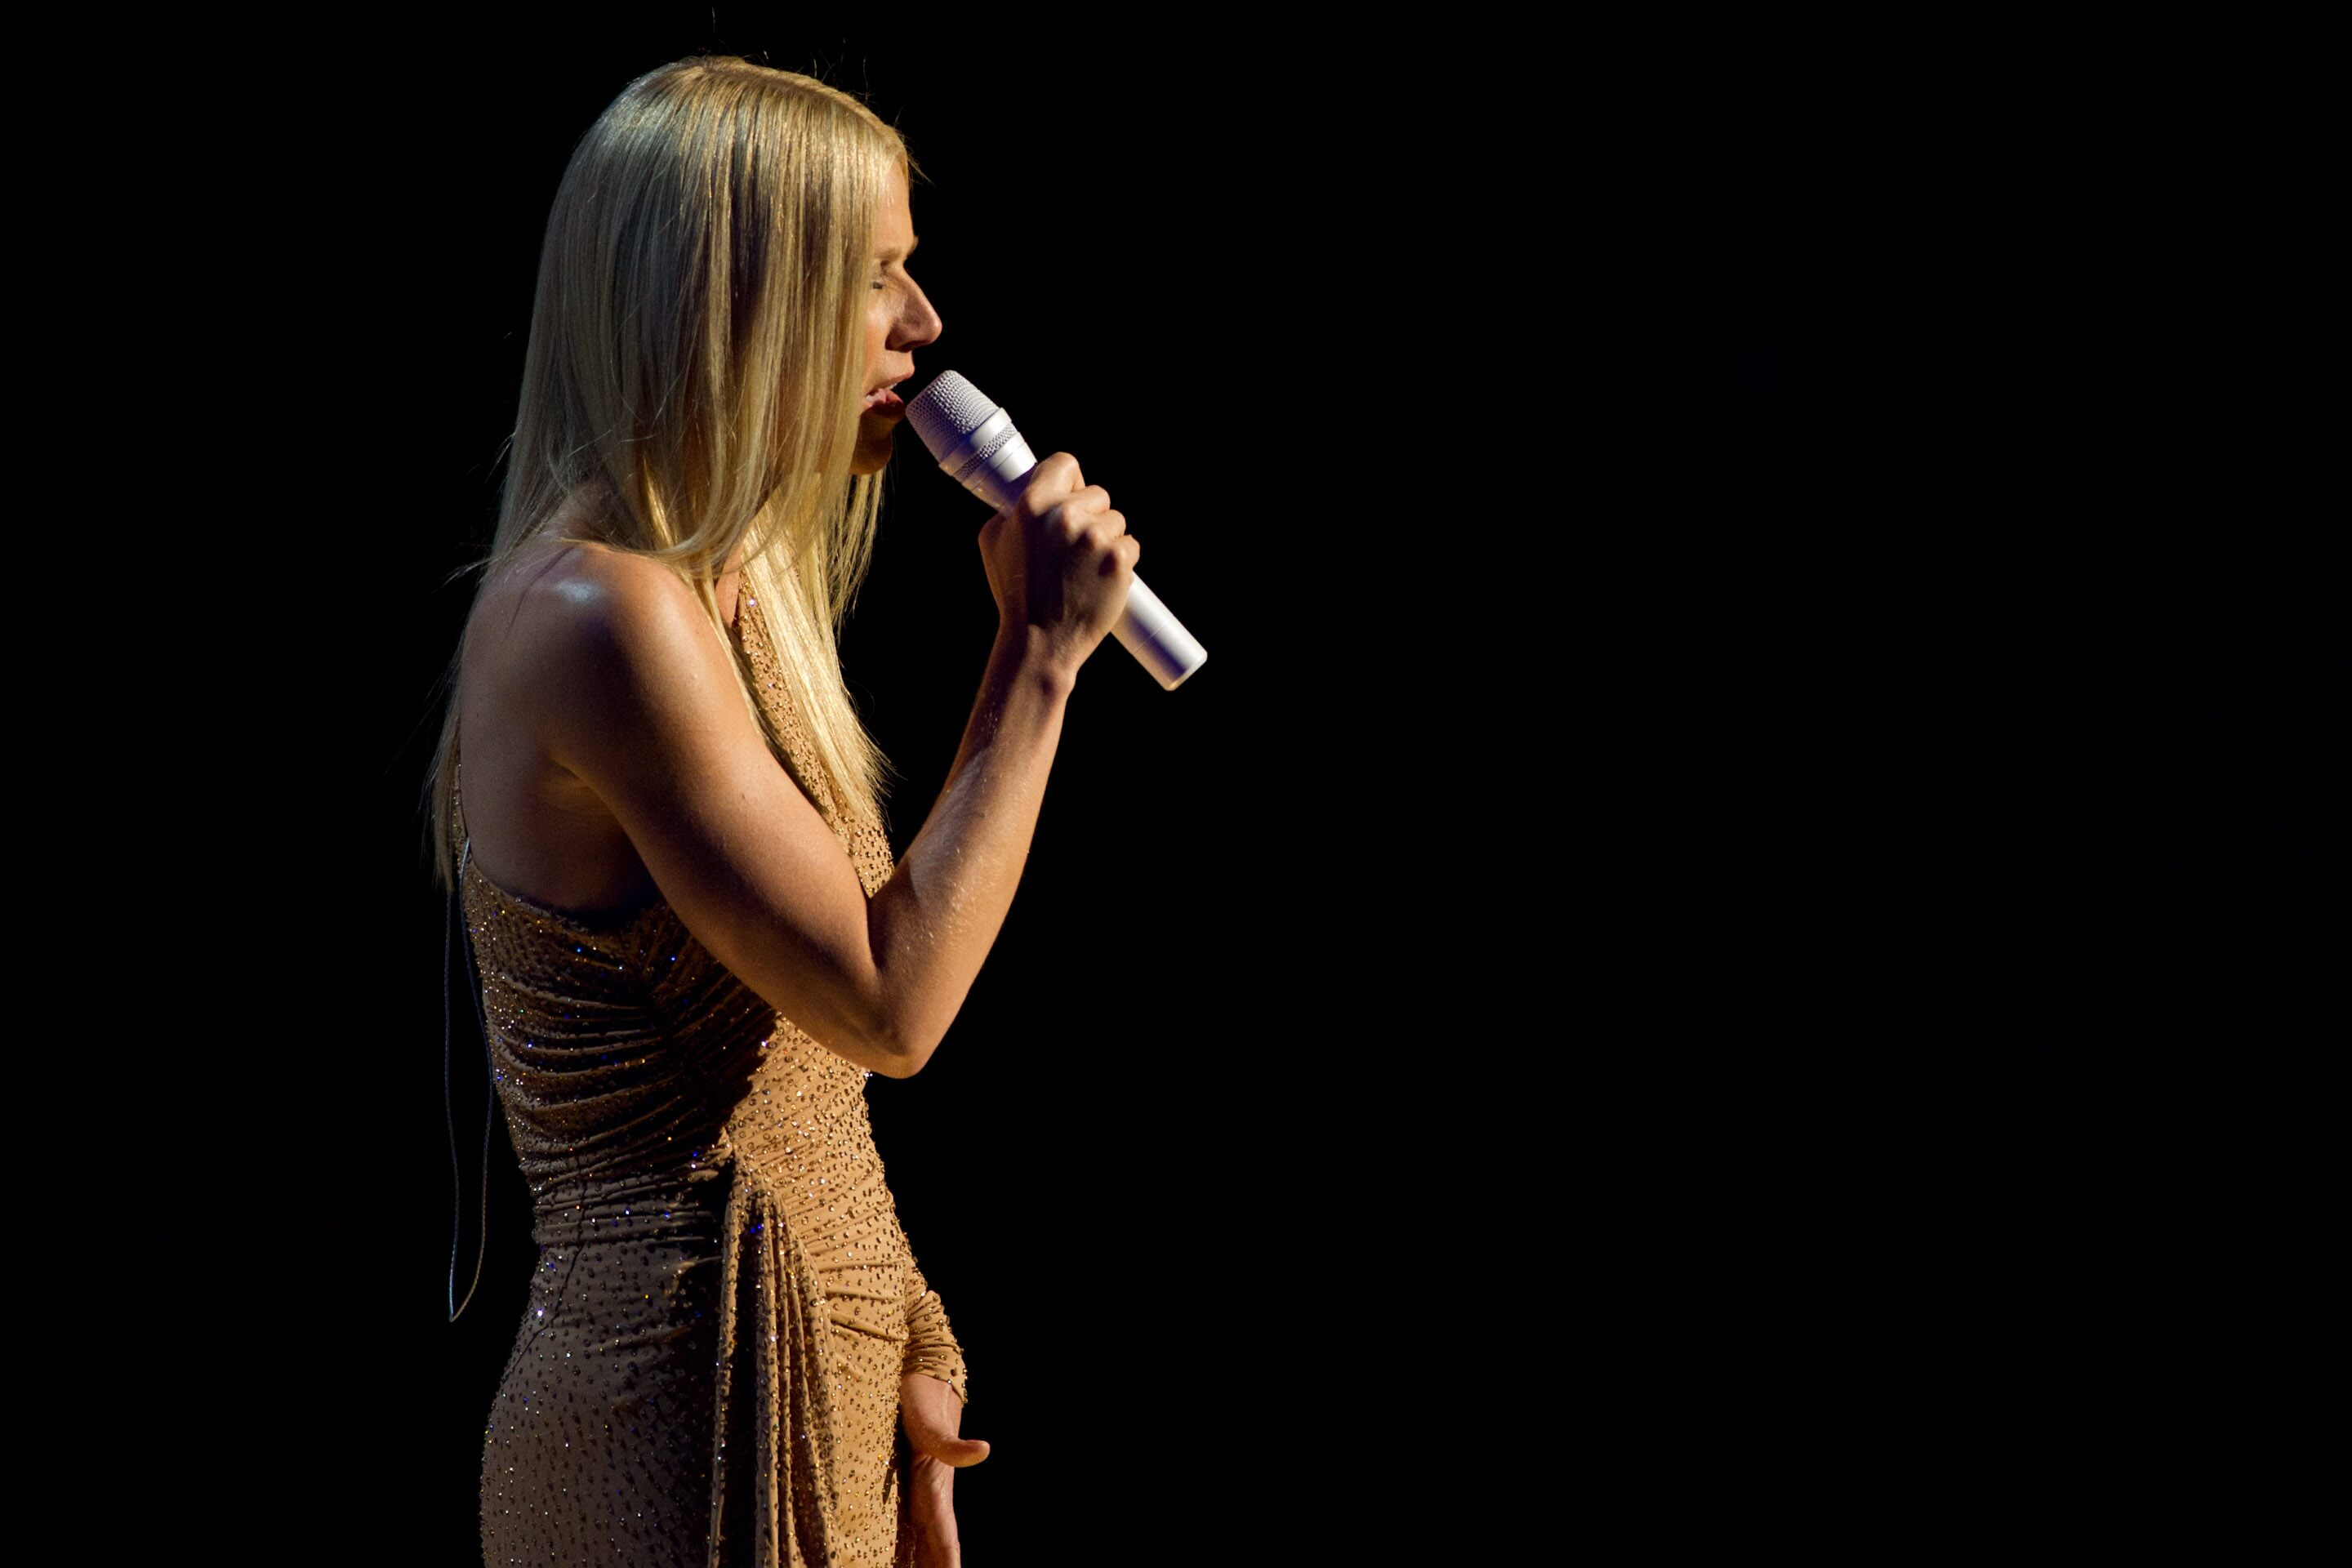 Gwyneth Paltrow performs on stage.